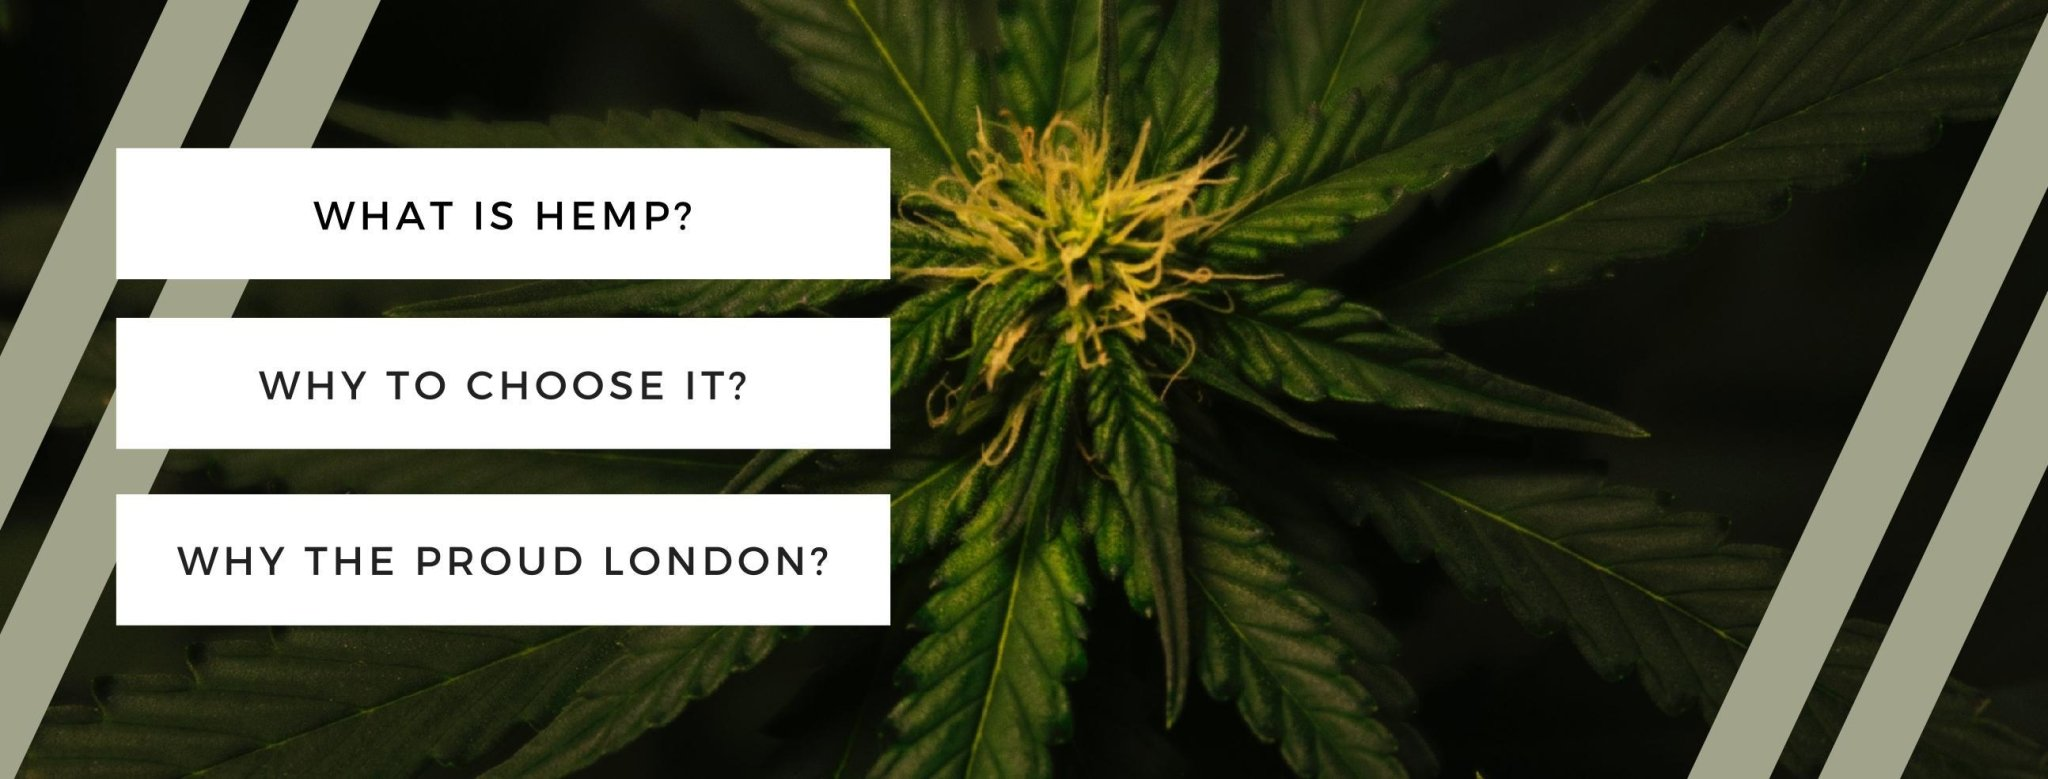 What is Hemp? Why choose Hemp? | TheProudLondon